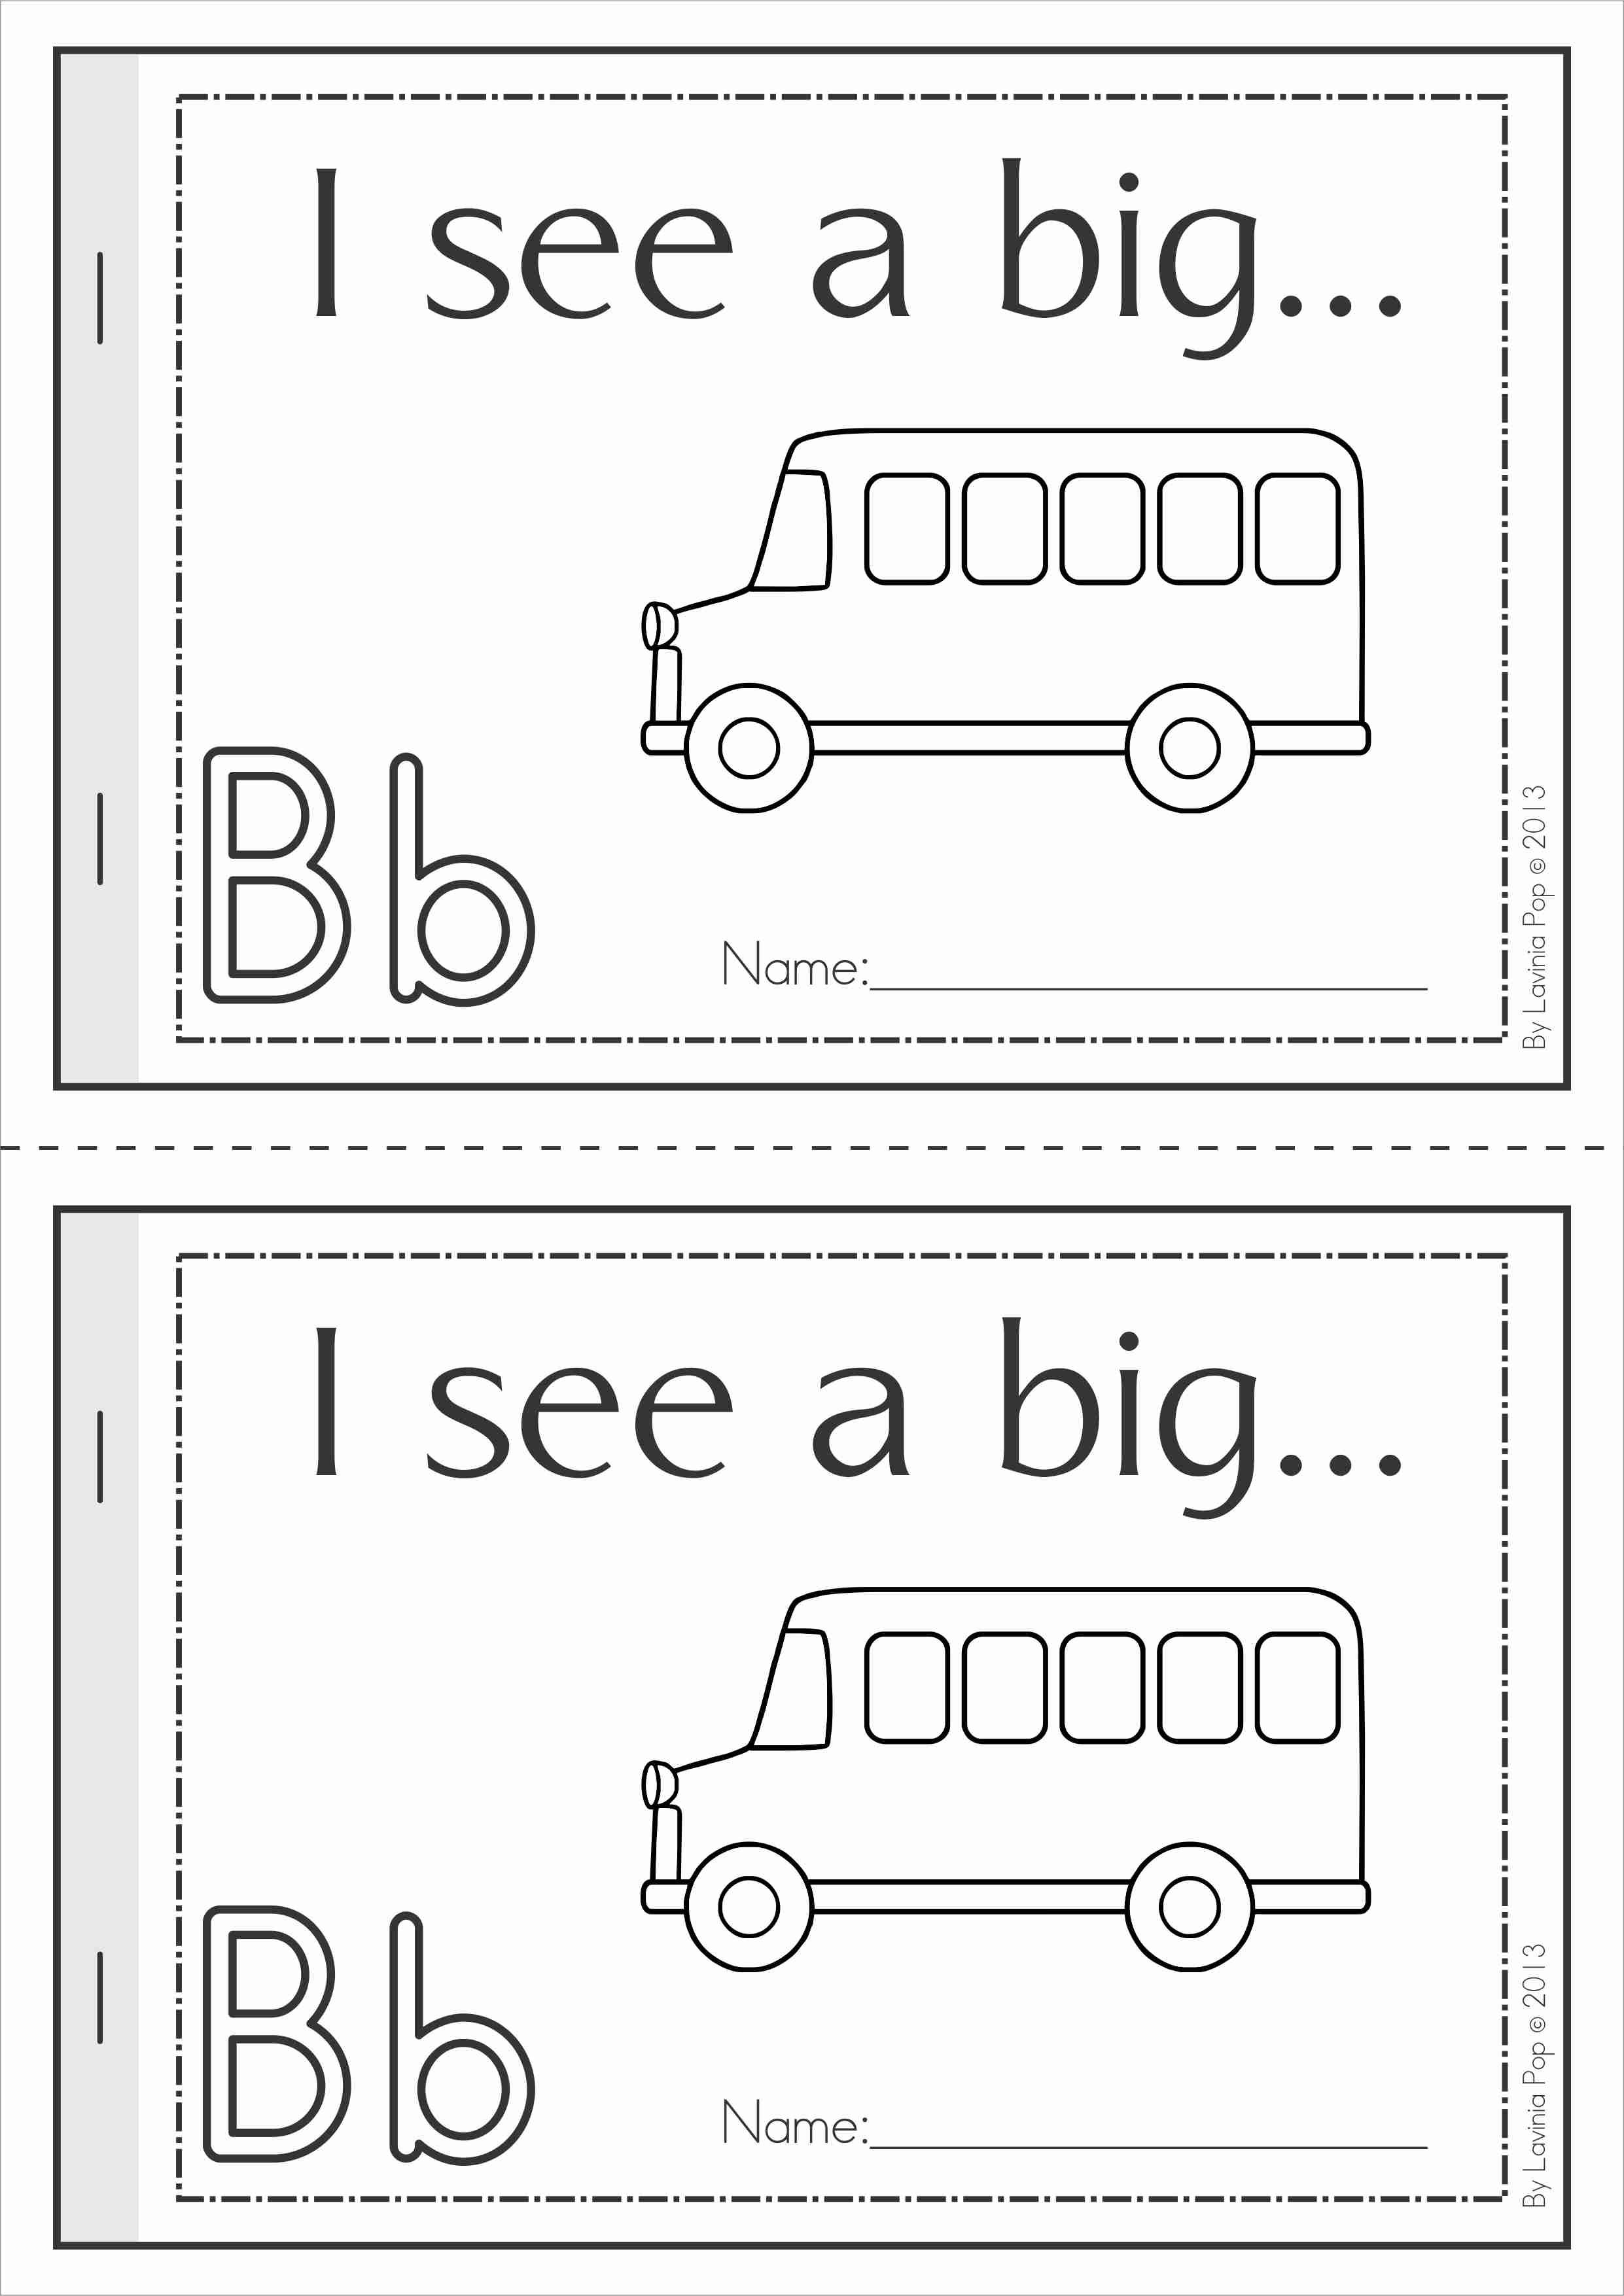 Phonics Letter Of The Week Bb Free A Huge Unit 81 Pages With All That You Need For A Letter Of The Week Curric Alphabet Phonics Phonics Letter Of The Week